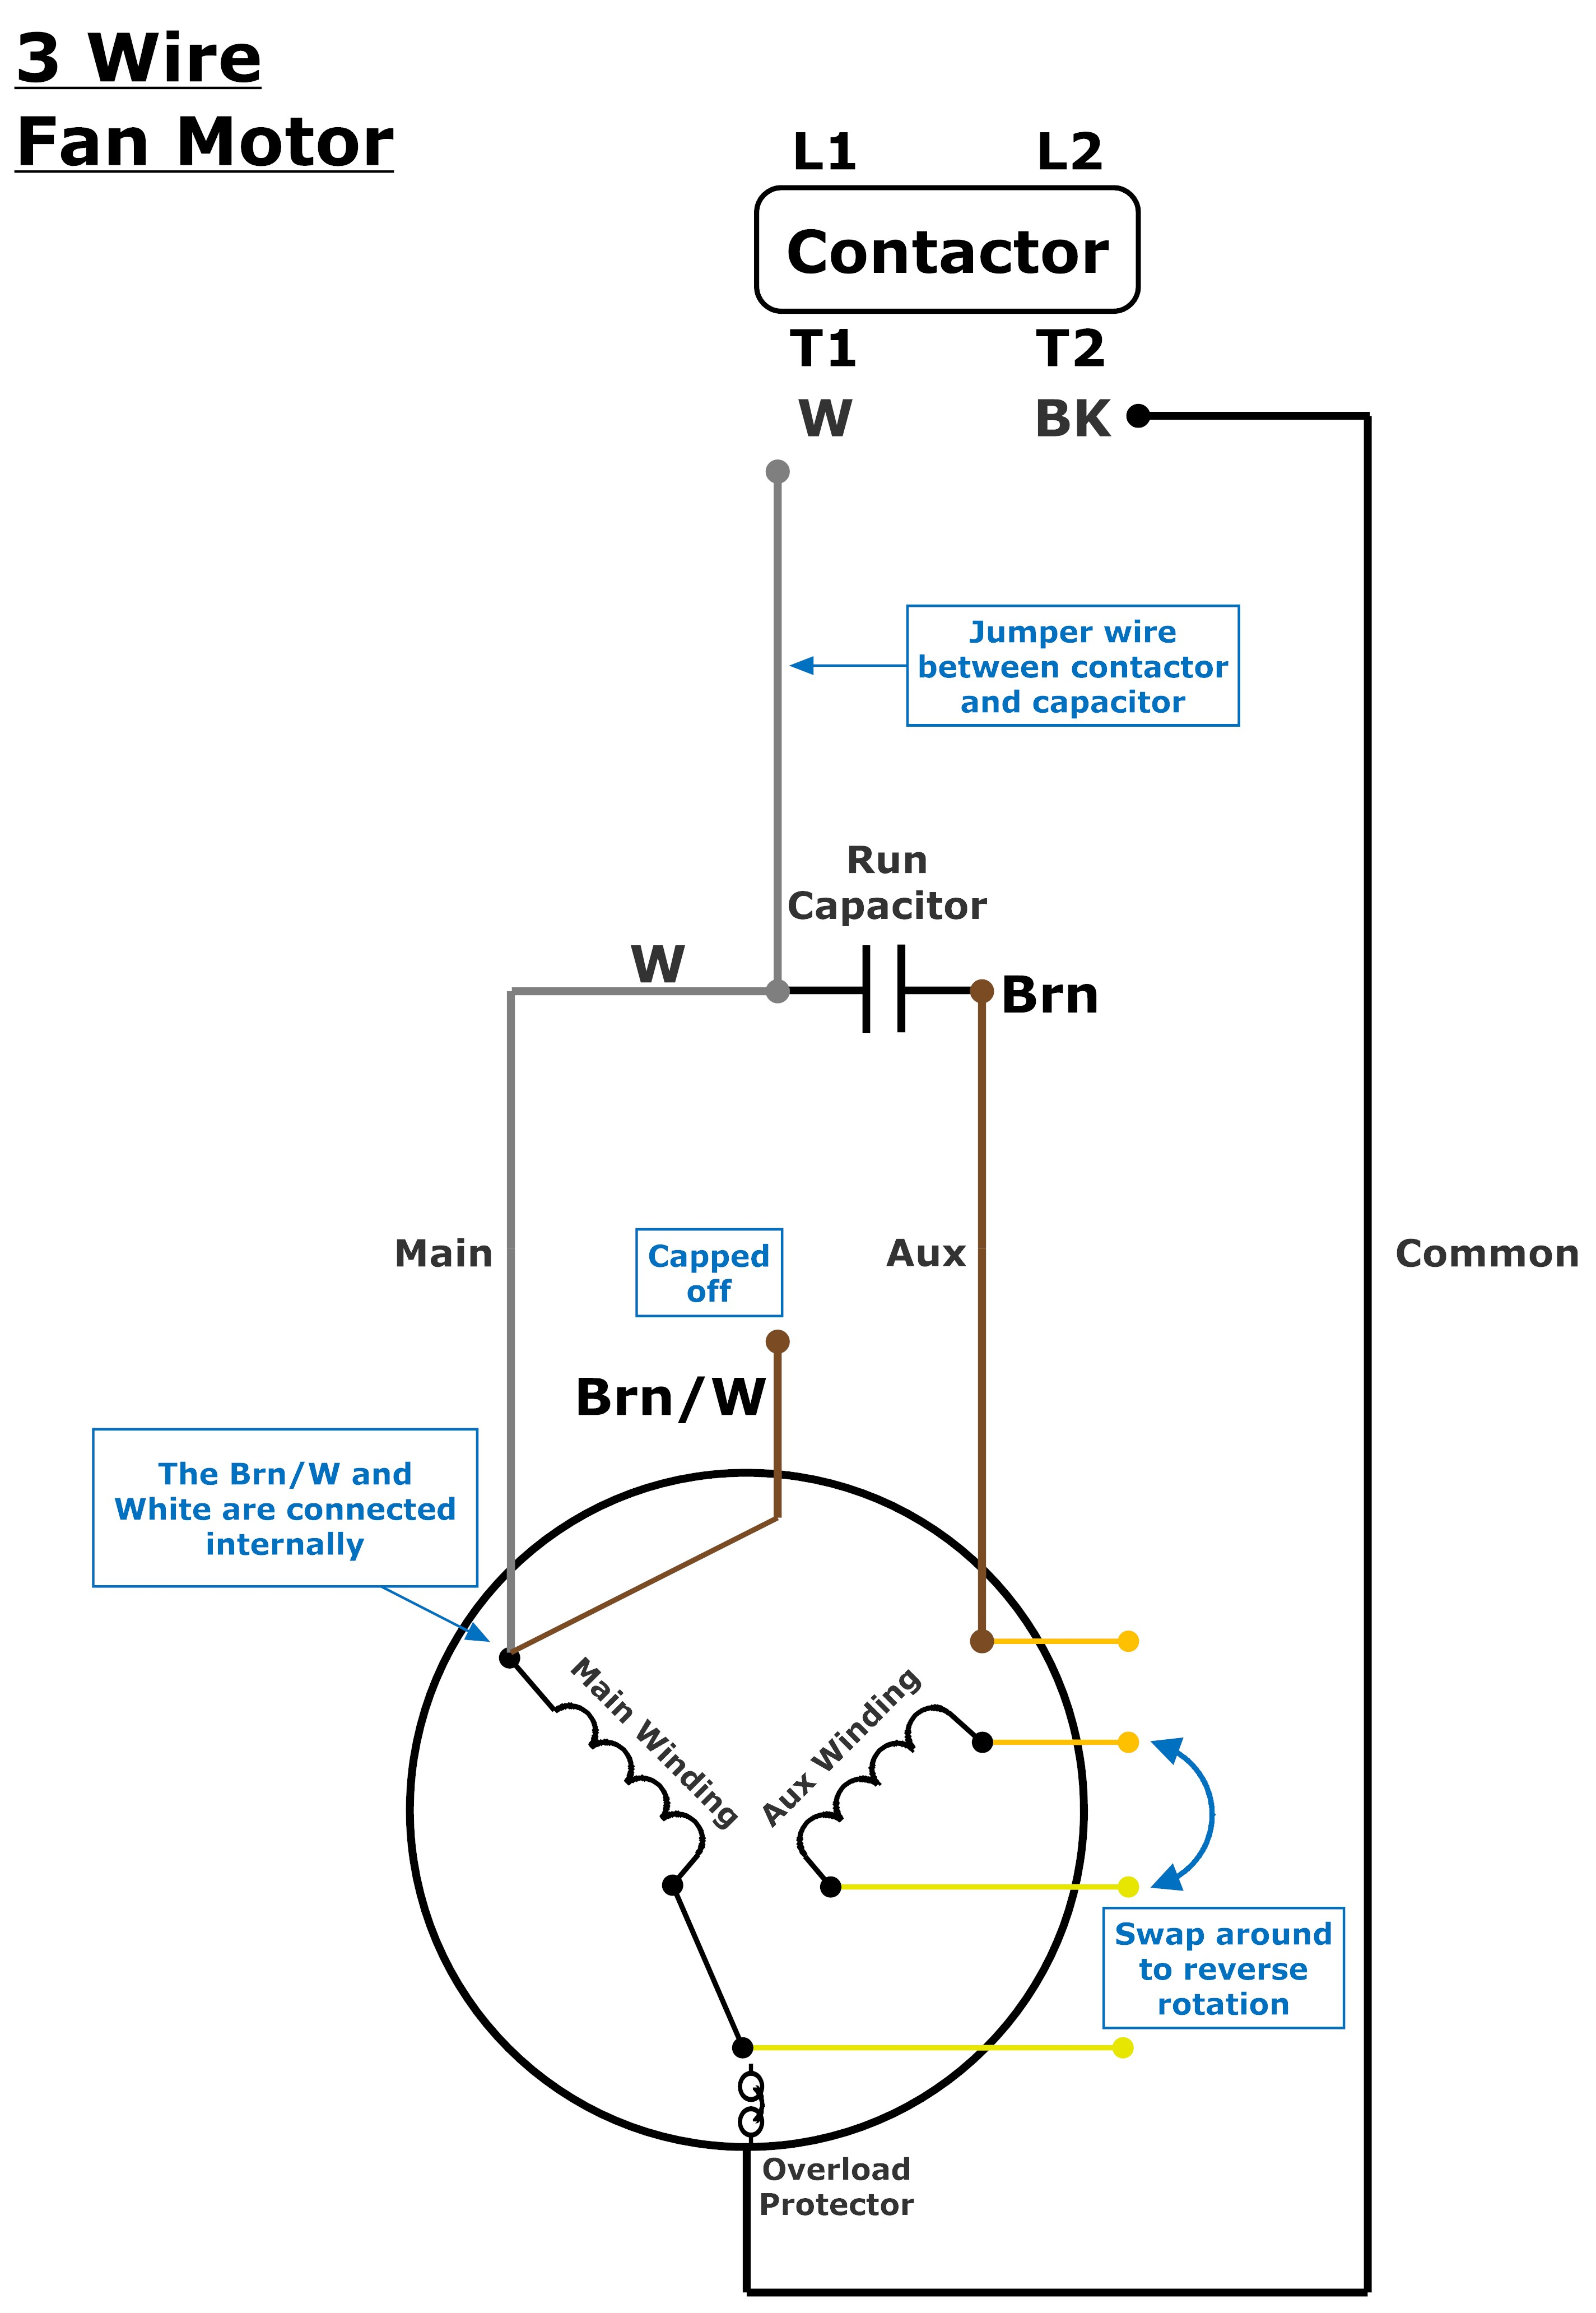 electrical bing] condenser phase wiring 3 | industrial wiring and  multiphase power plugs and sockets  decorpanel.it